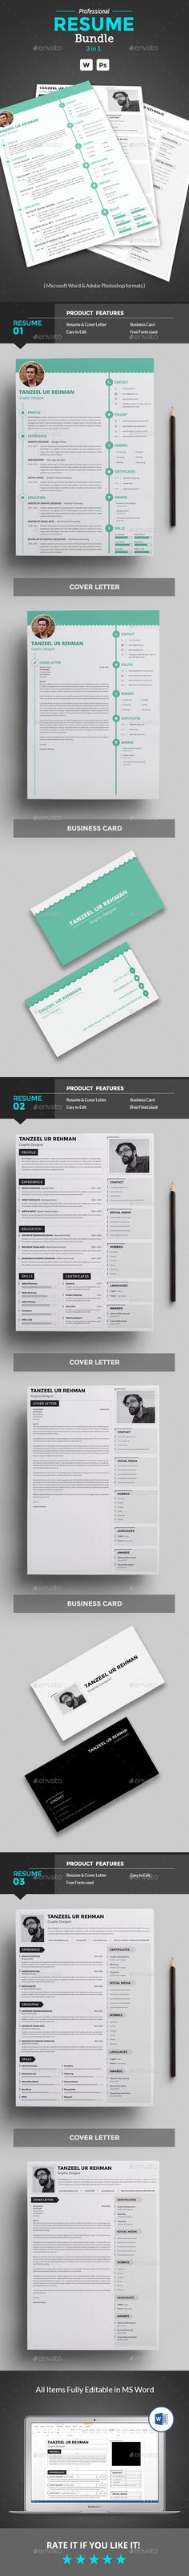 Clean Resume Template Bundle PSD Vector